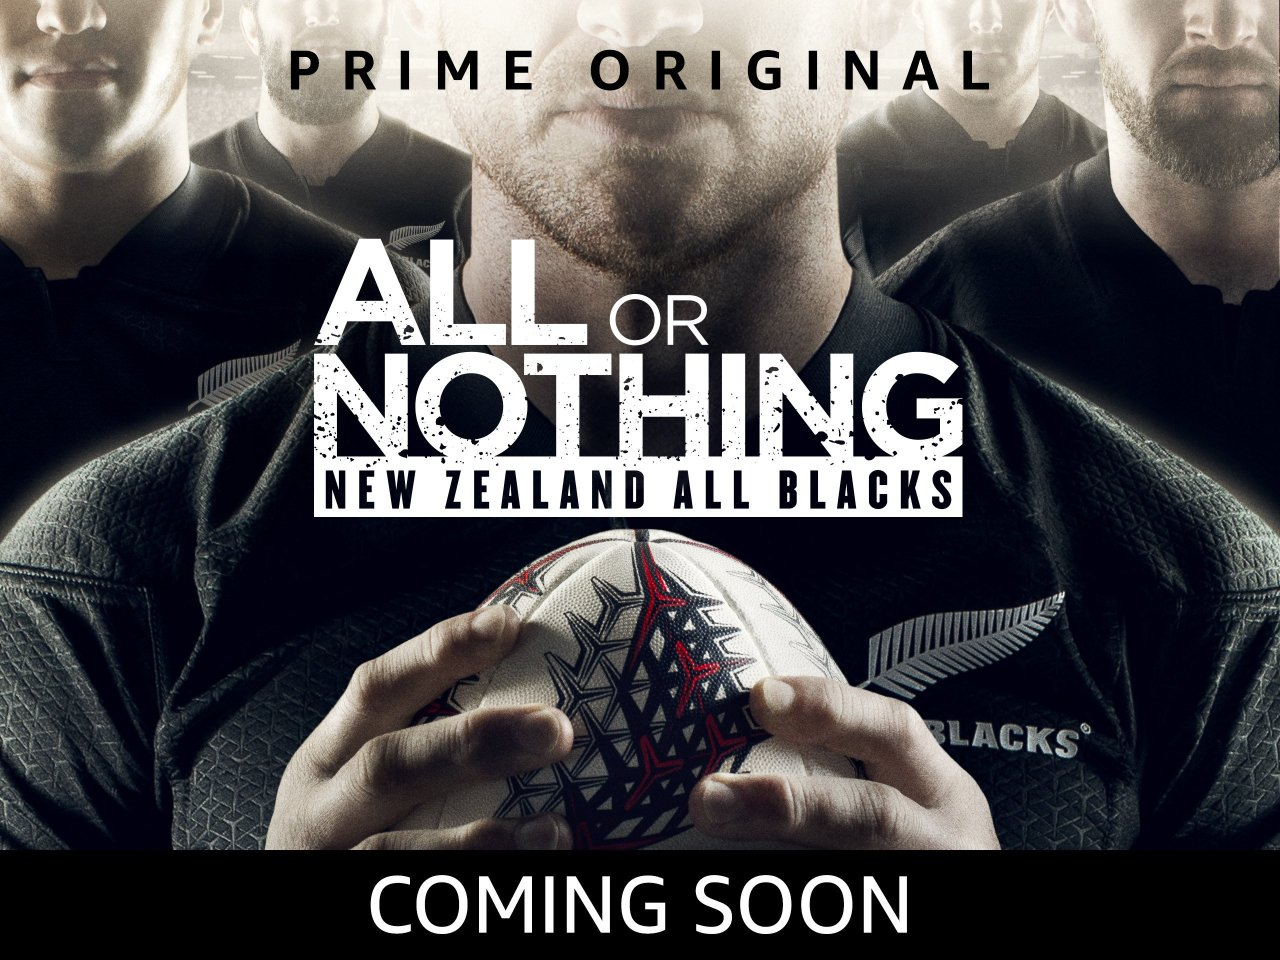 All or nothing